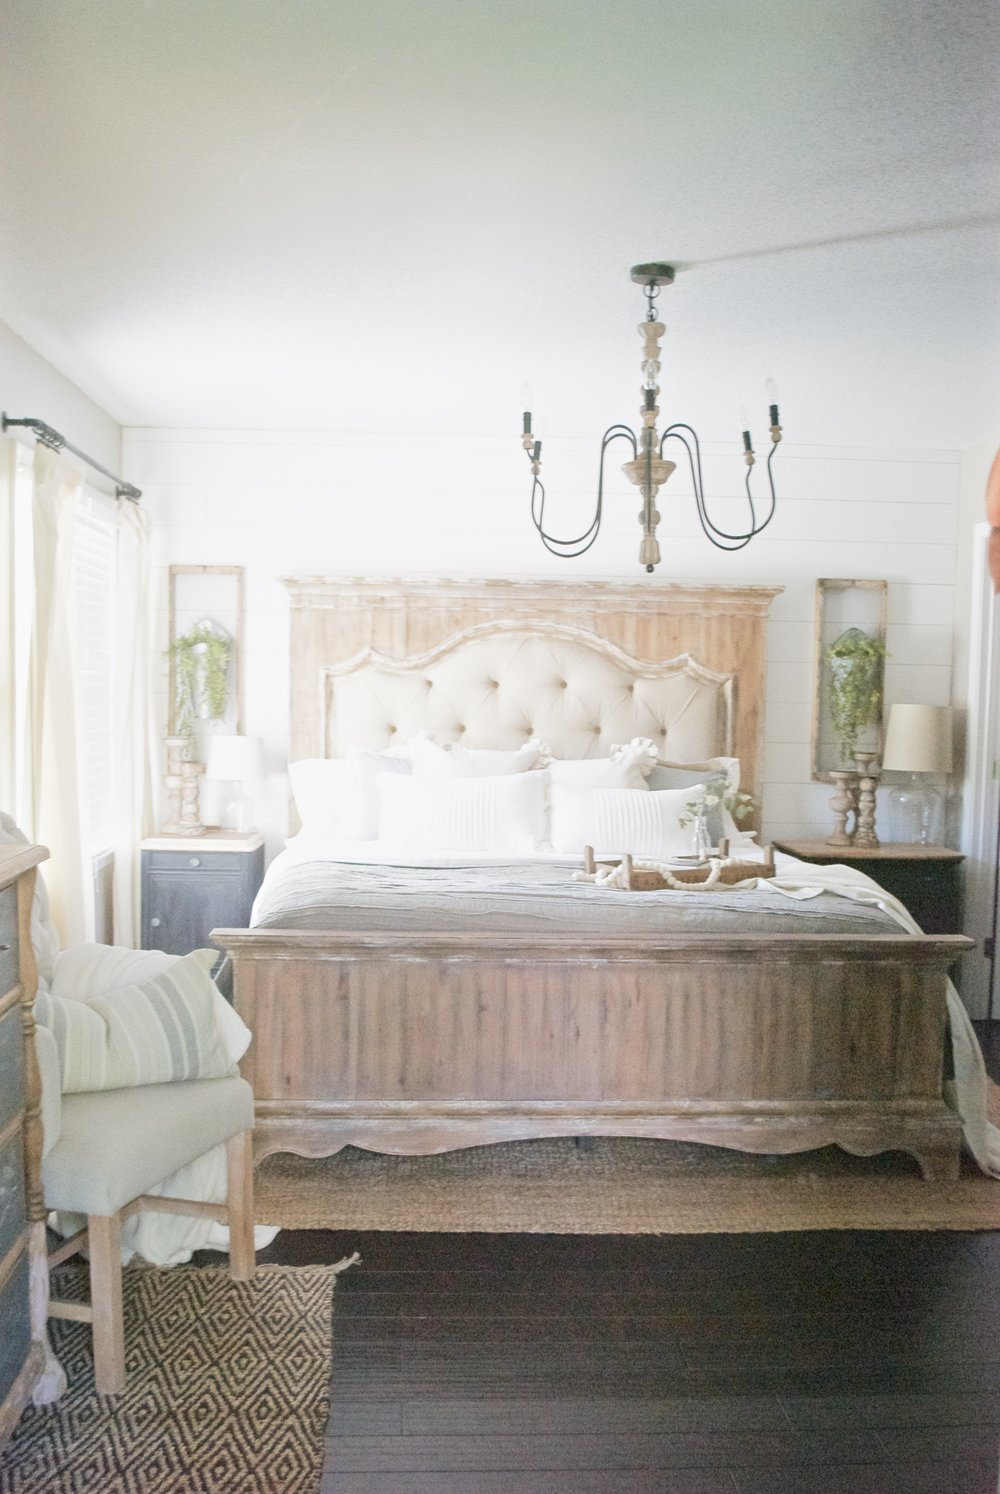 Farmhouse Style Bed- Plum Pretty Decor and Design